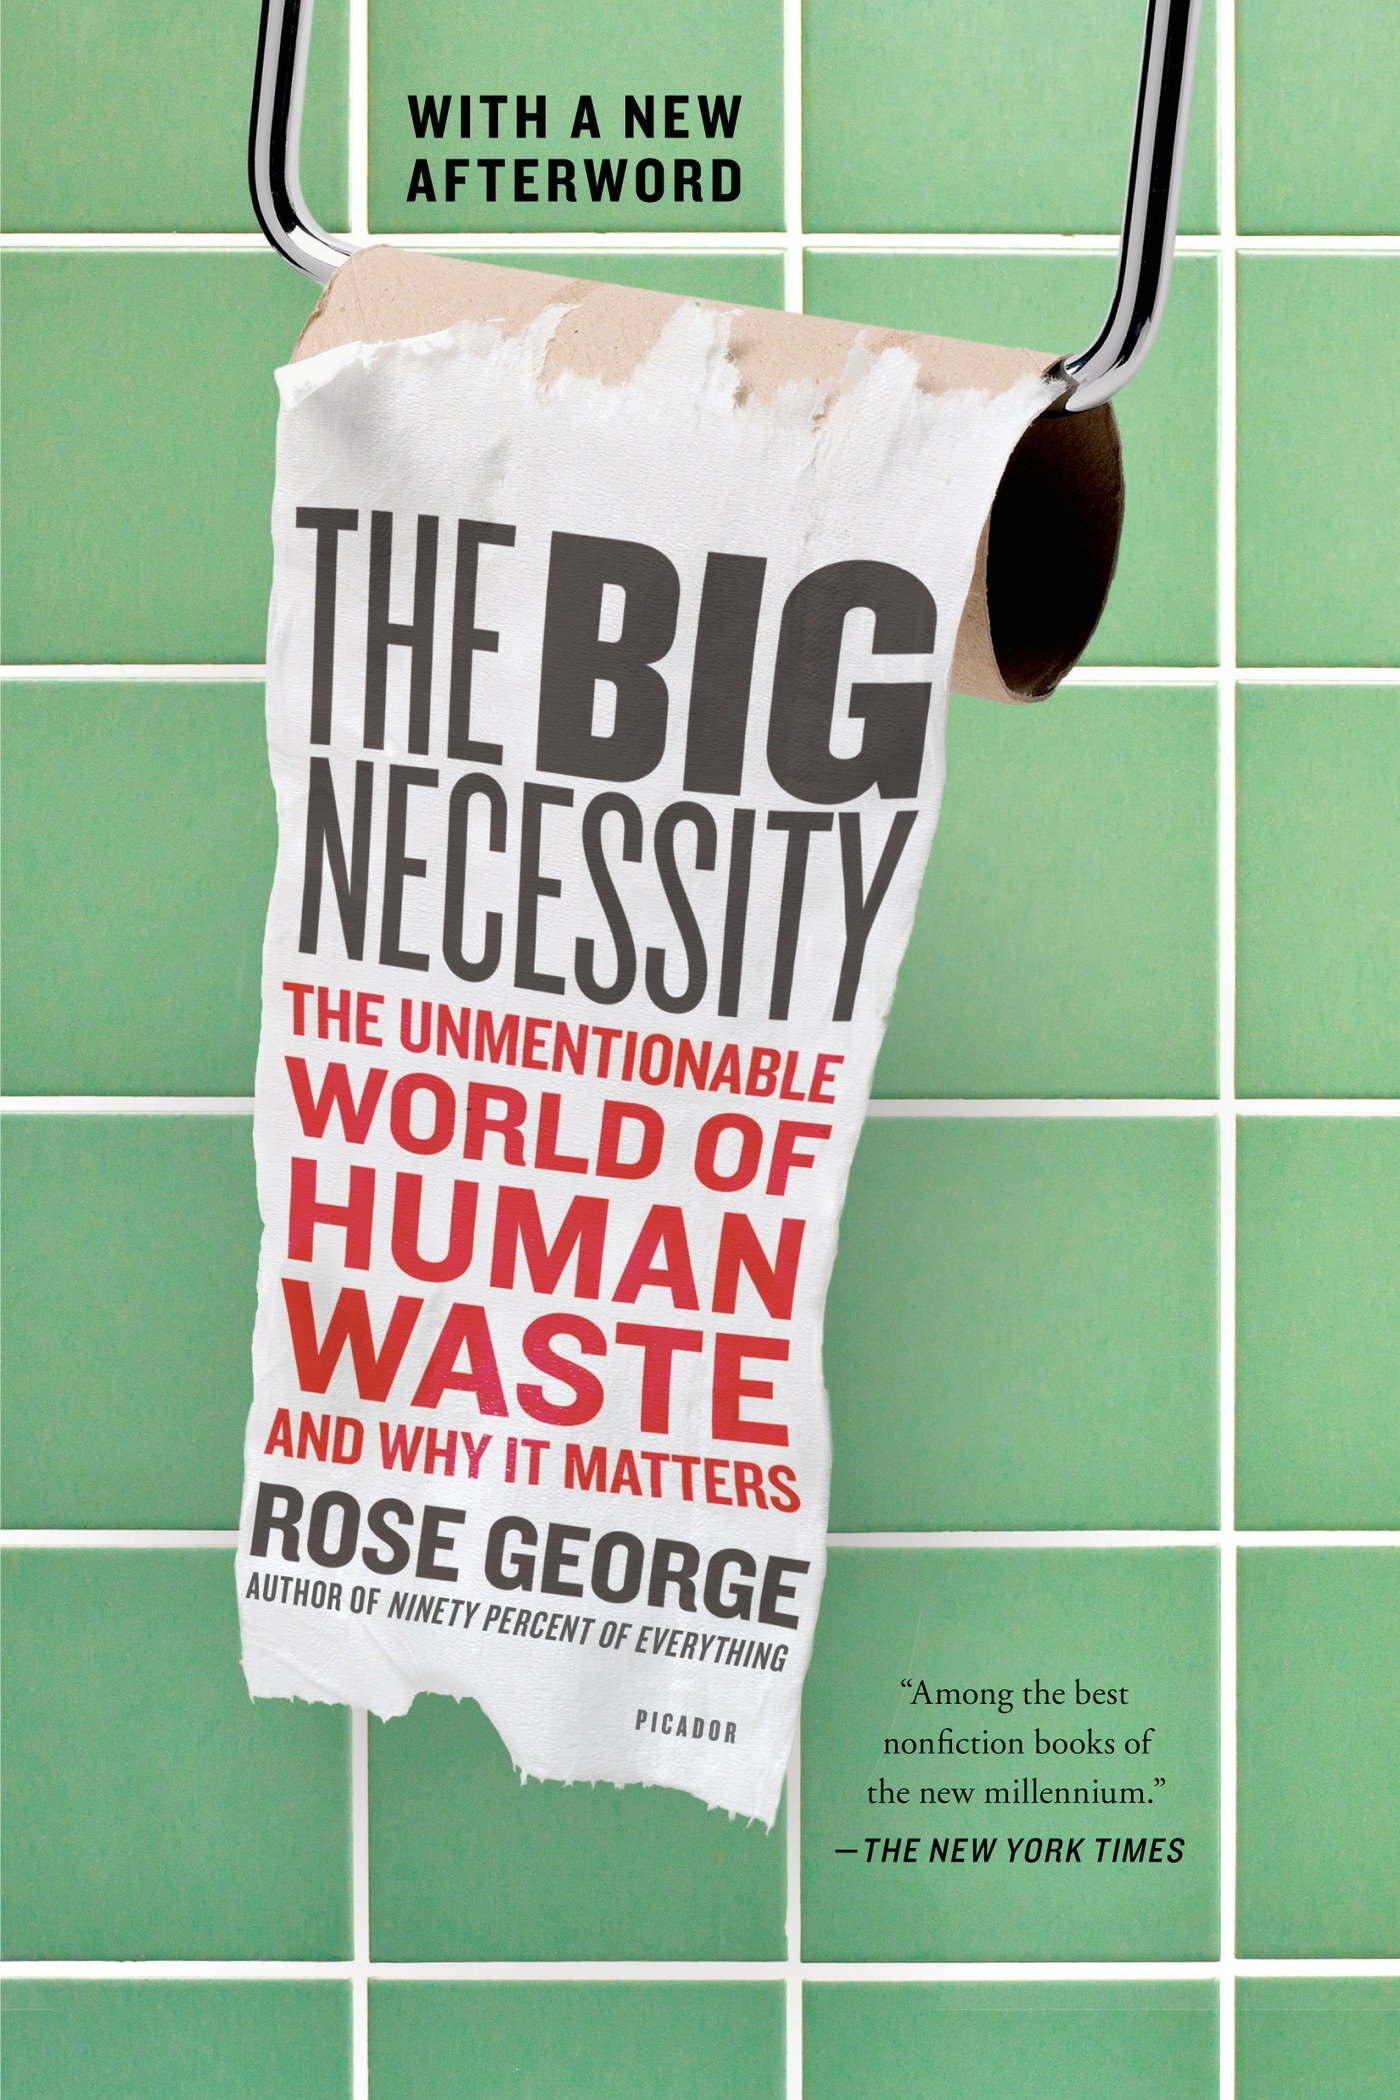 Amazon.com: The Big Necessity: The Unmentionable World of Human ...